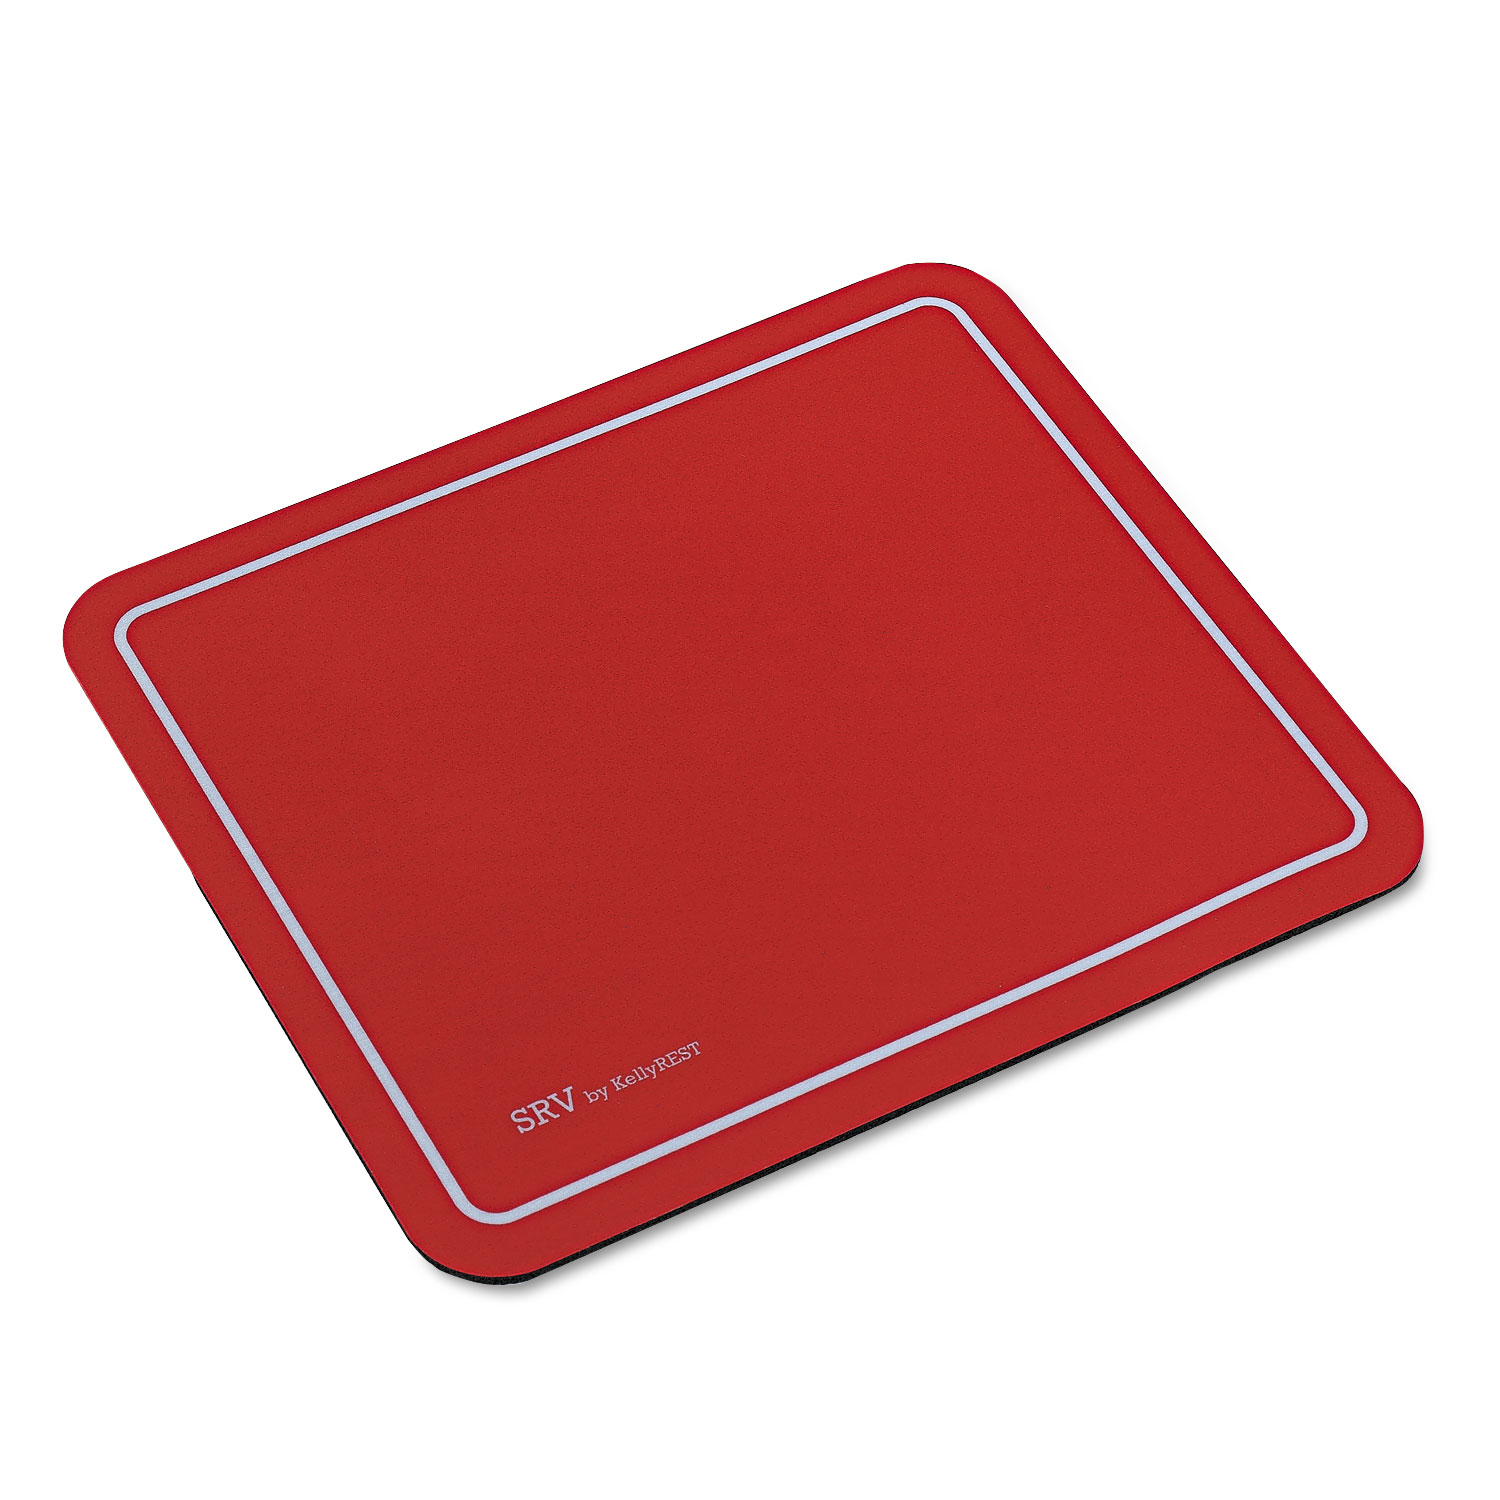 Kelly Computer Supply SRV Optical Mouse Pad, Nonskid Base, 9 x 7-3/4, Red